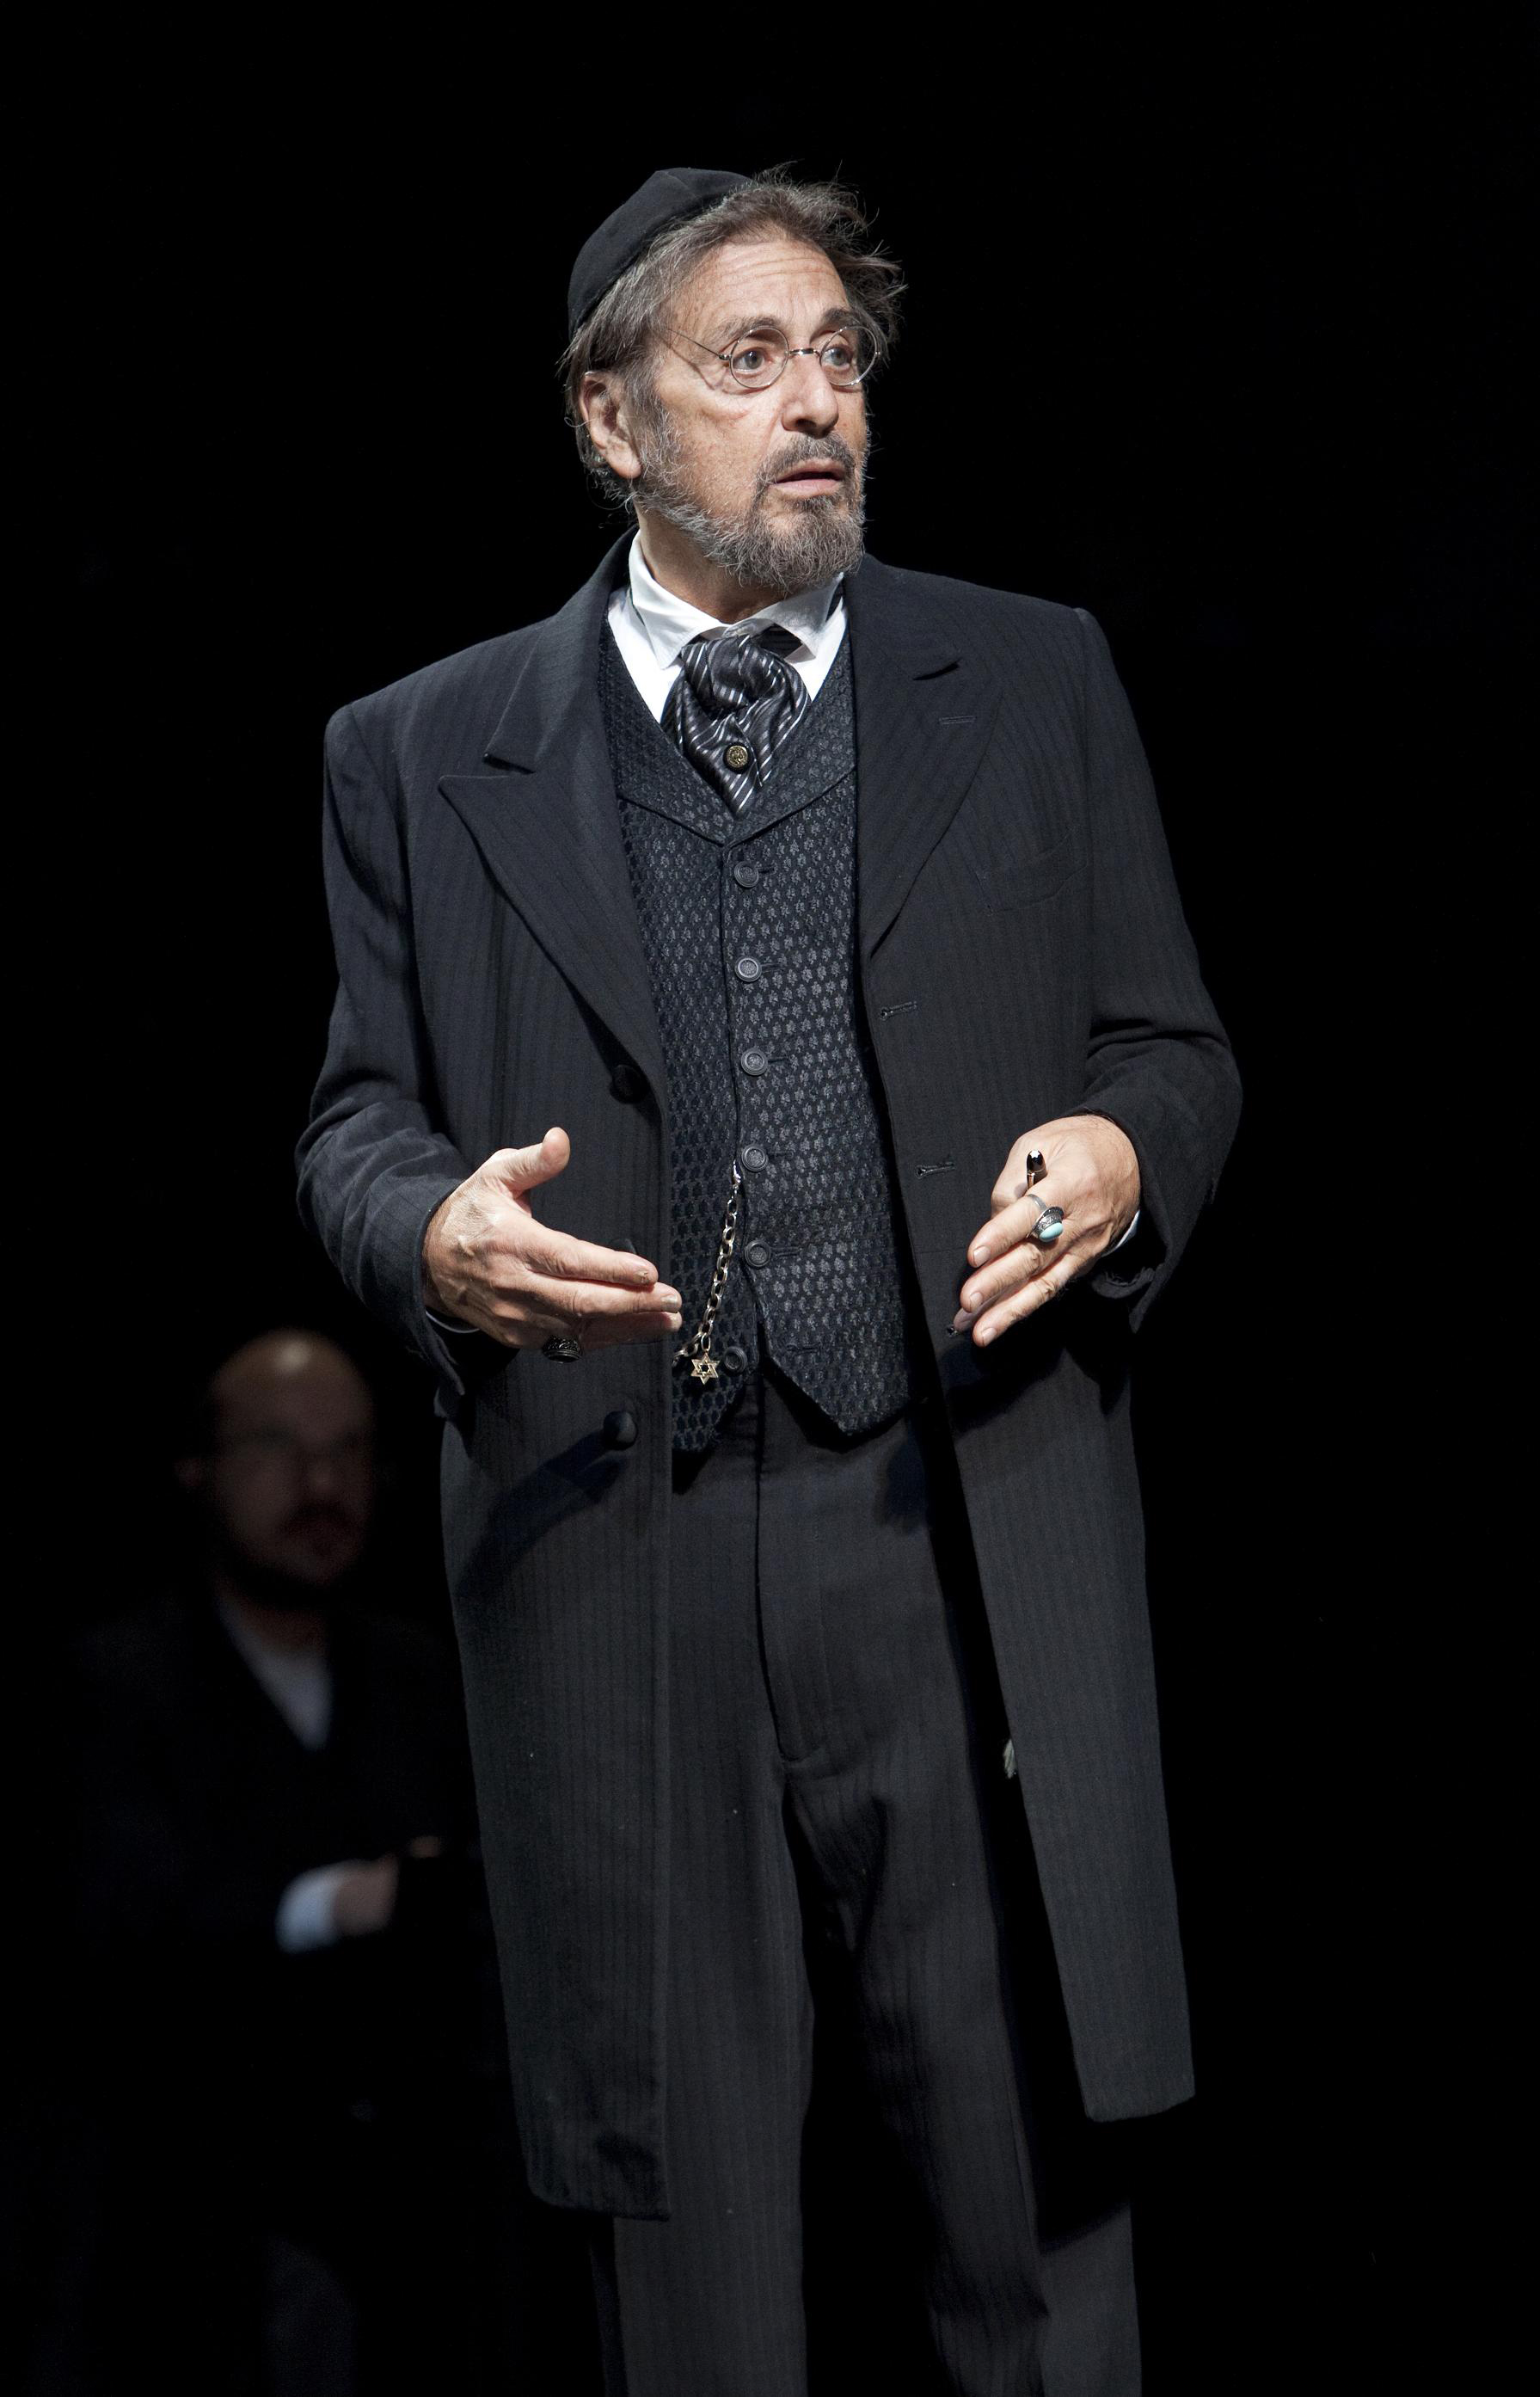 Al Pacino appeared as Shylock in <i>The Merchant of Venice</i> in 2010.